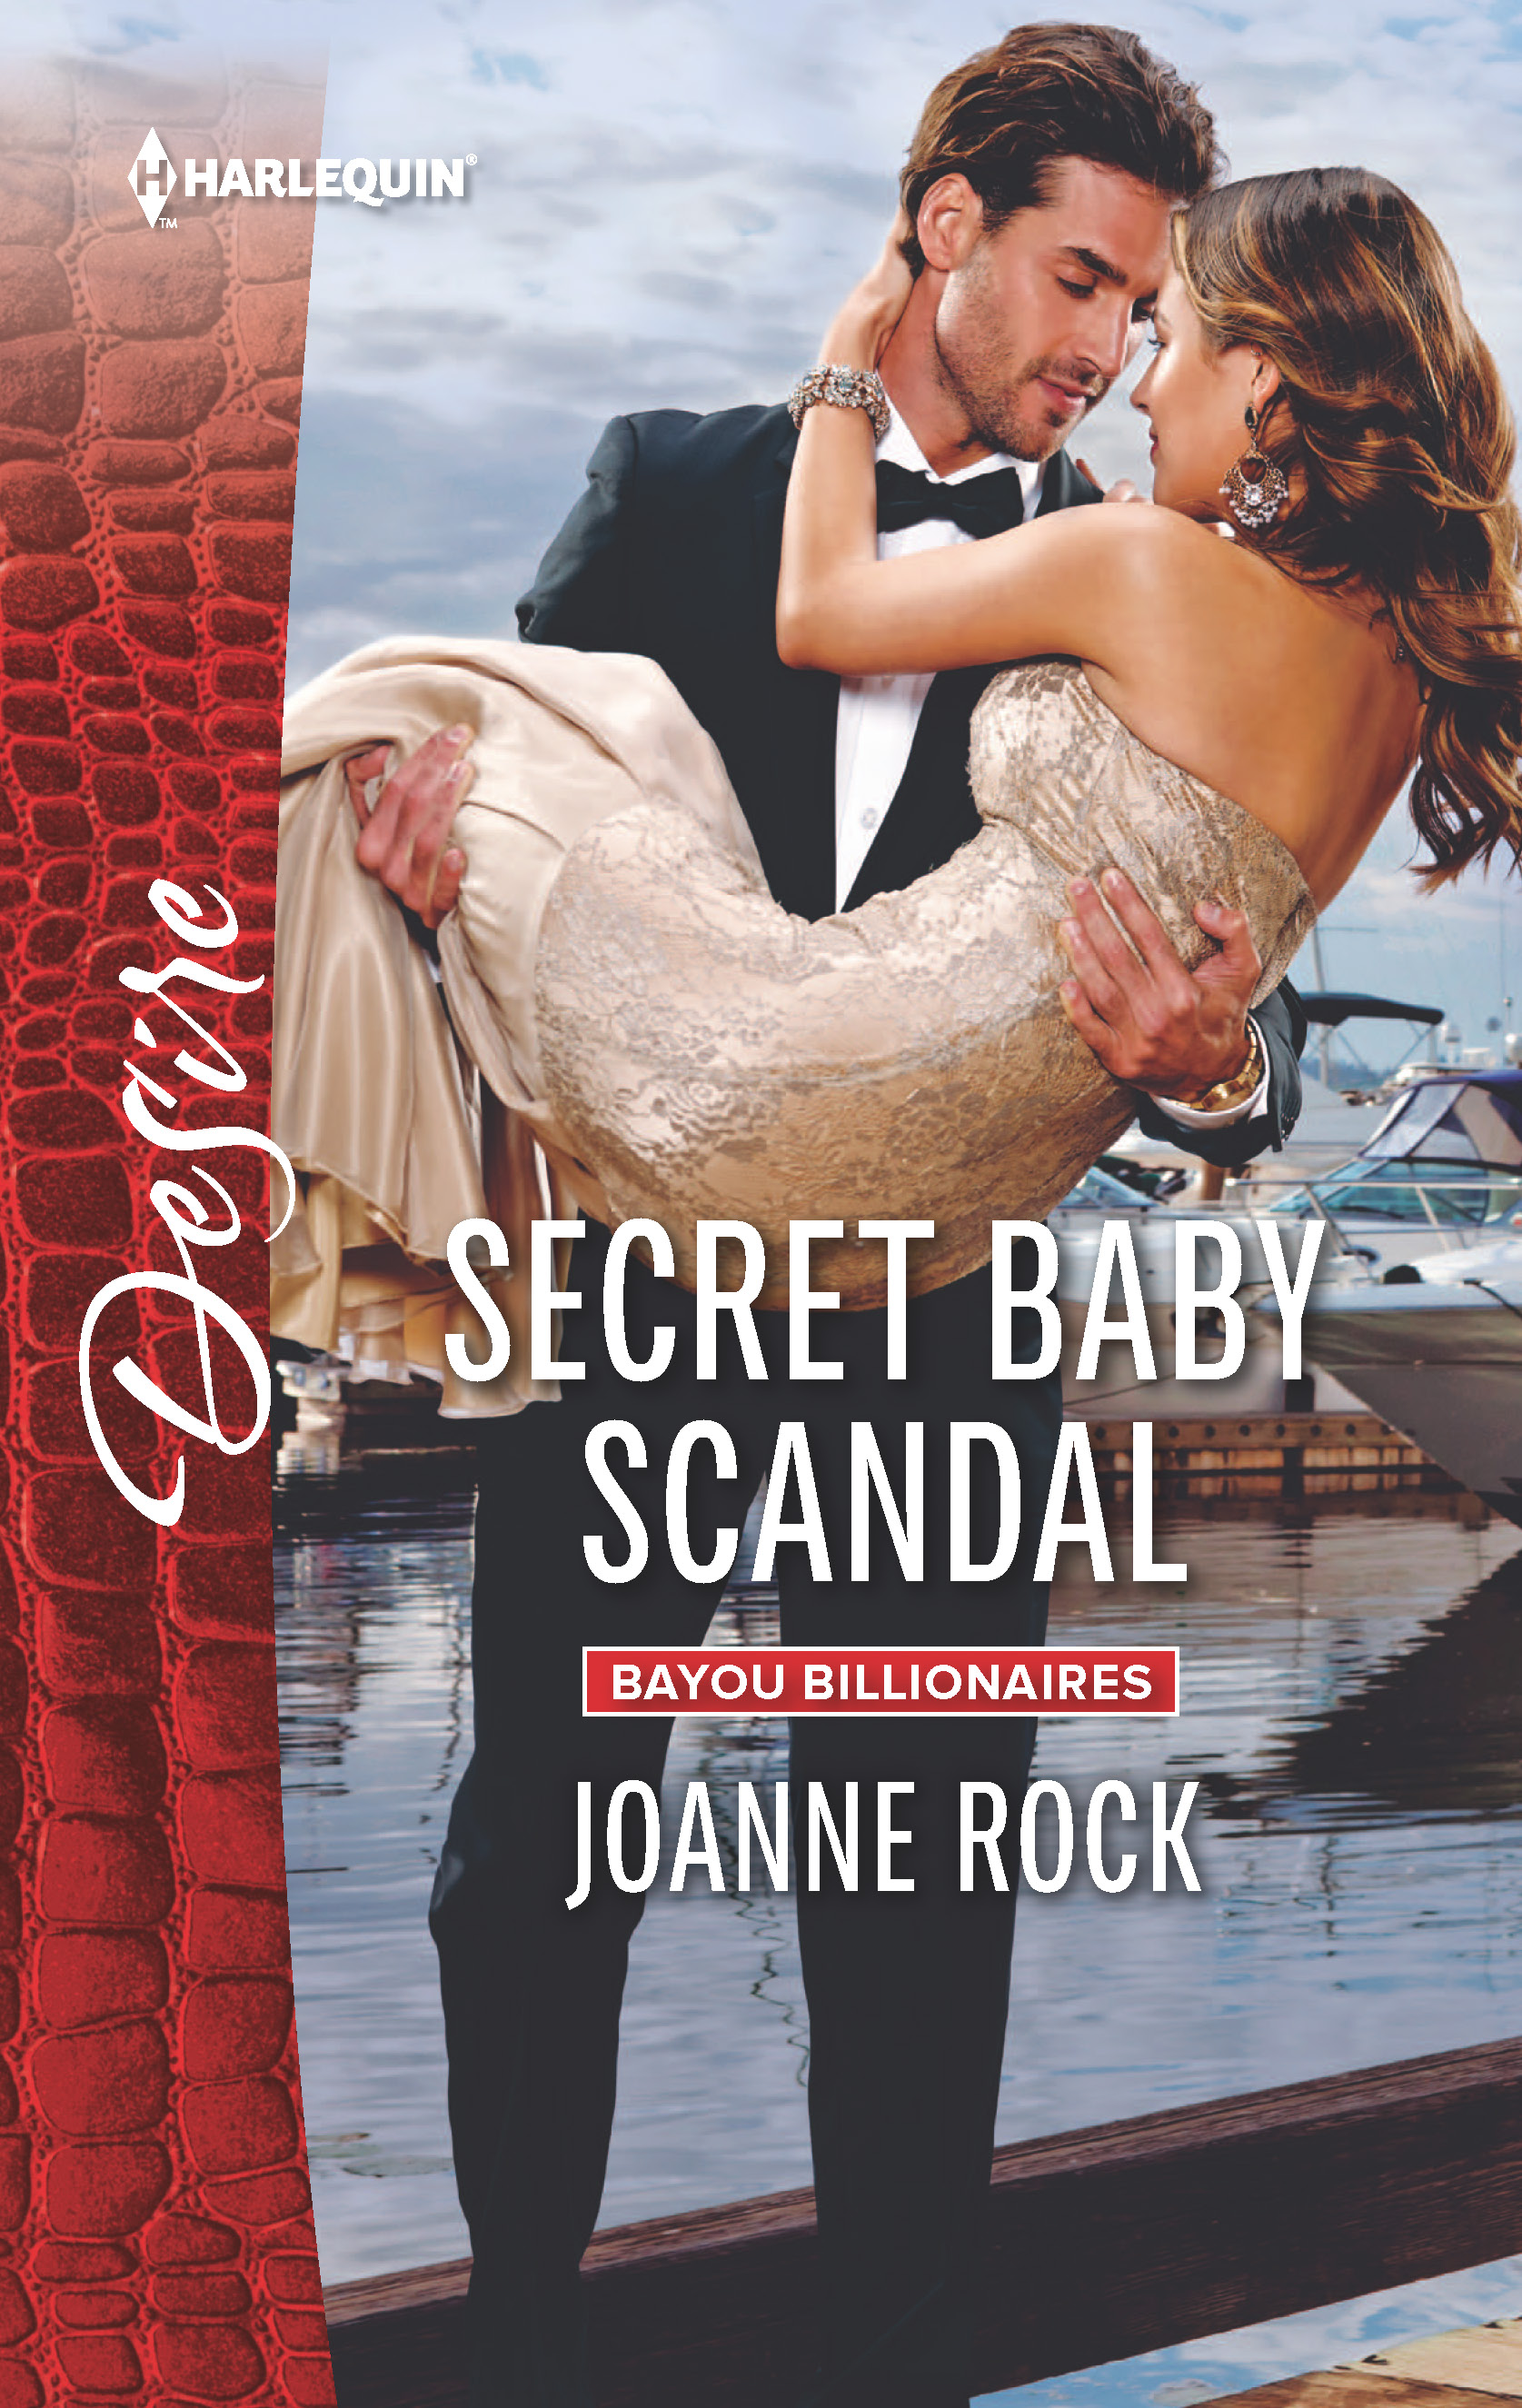 Secret Baby Scandal by Joanne Rock